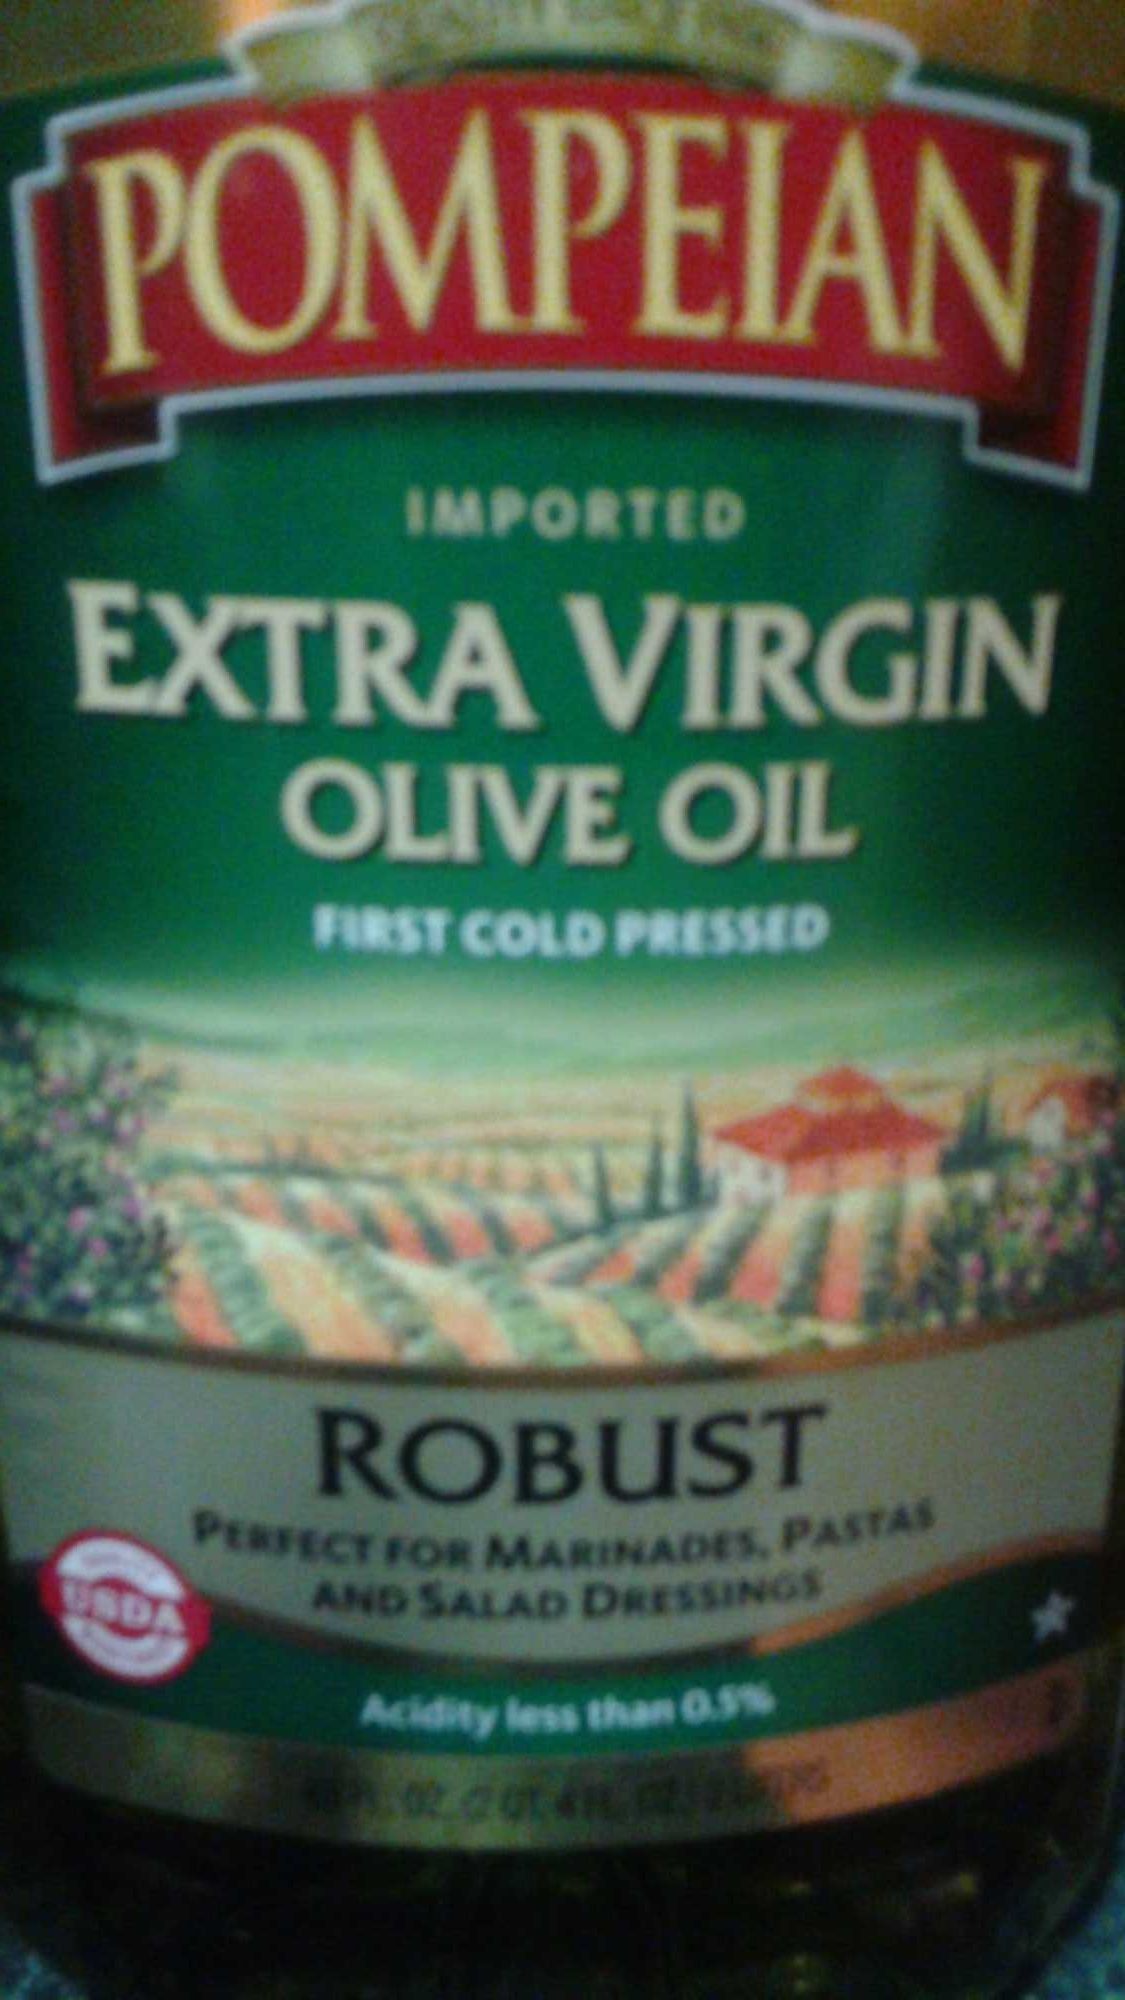 Extra Virgin Olive Oil, Robust - Product